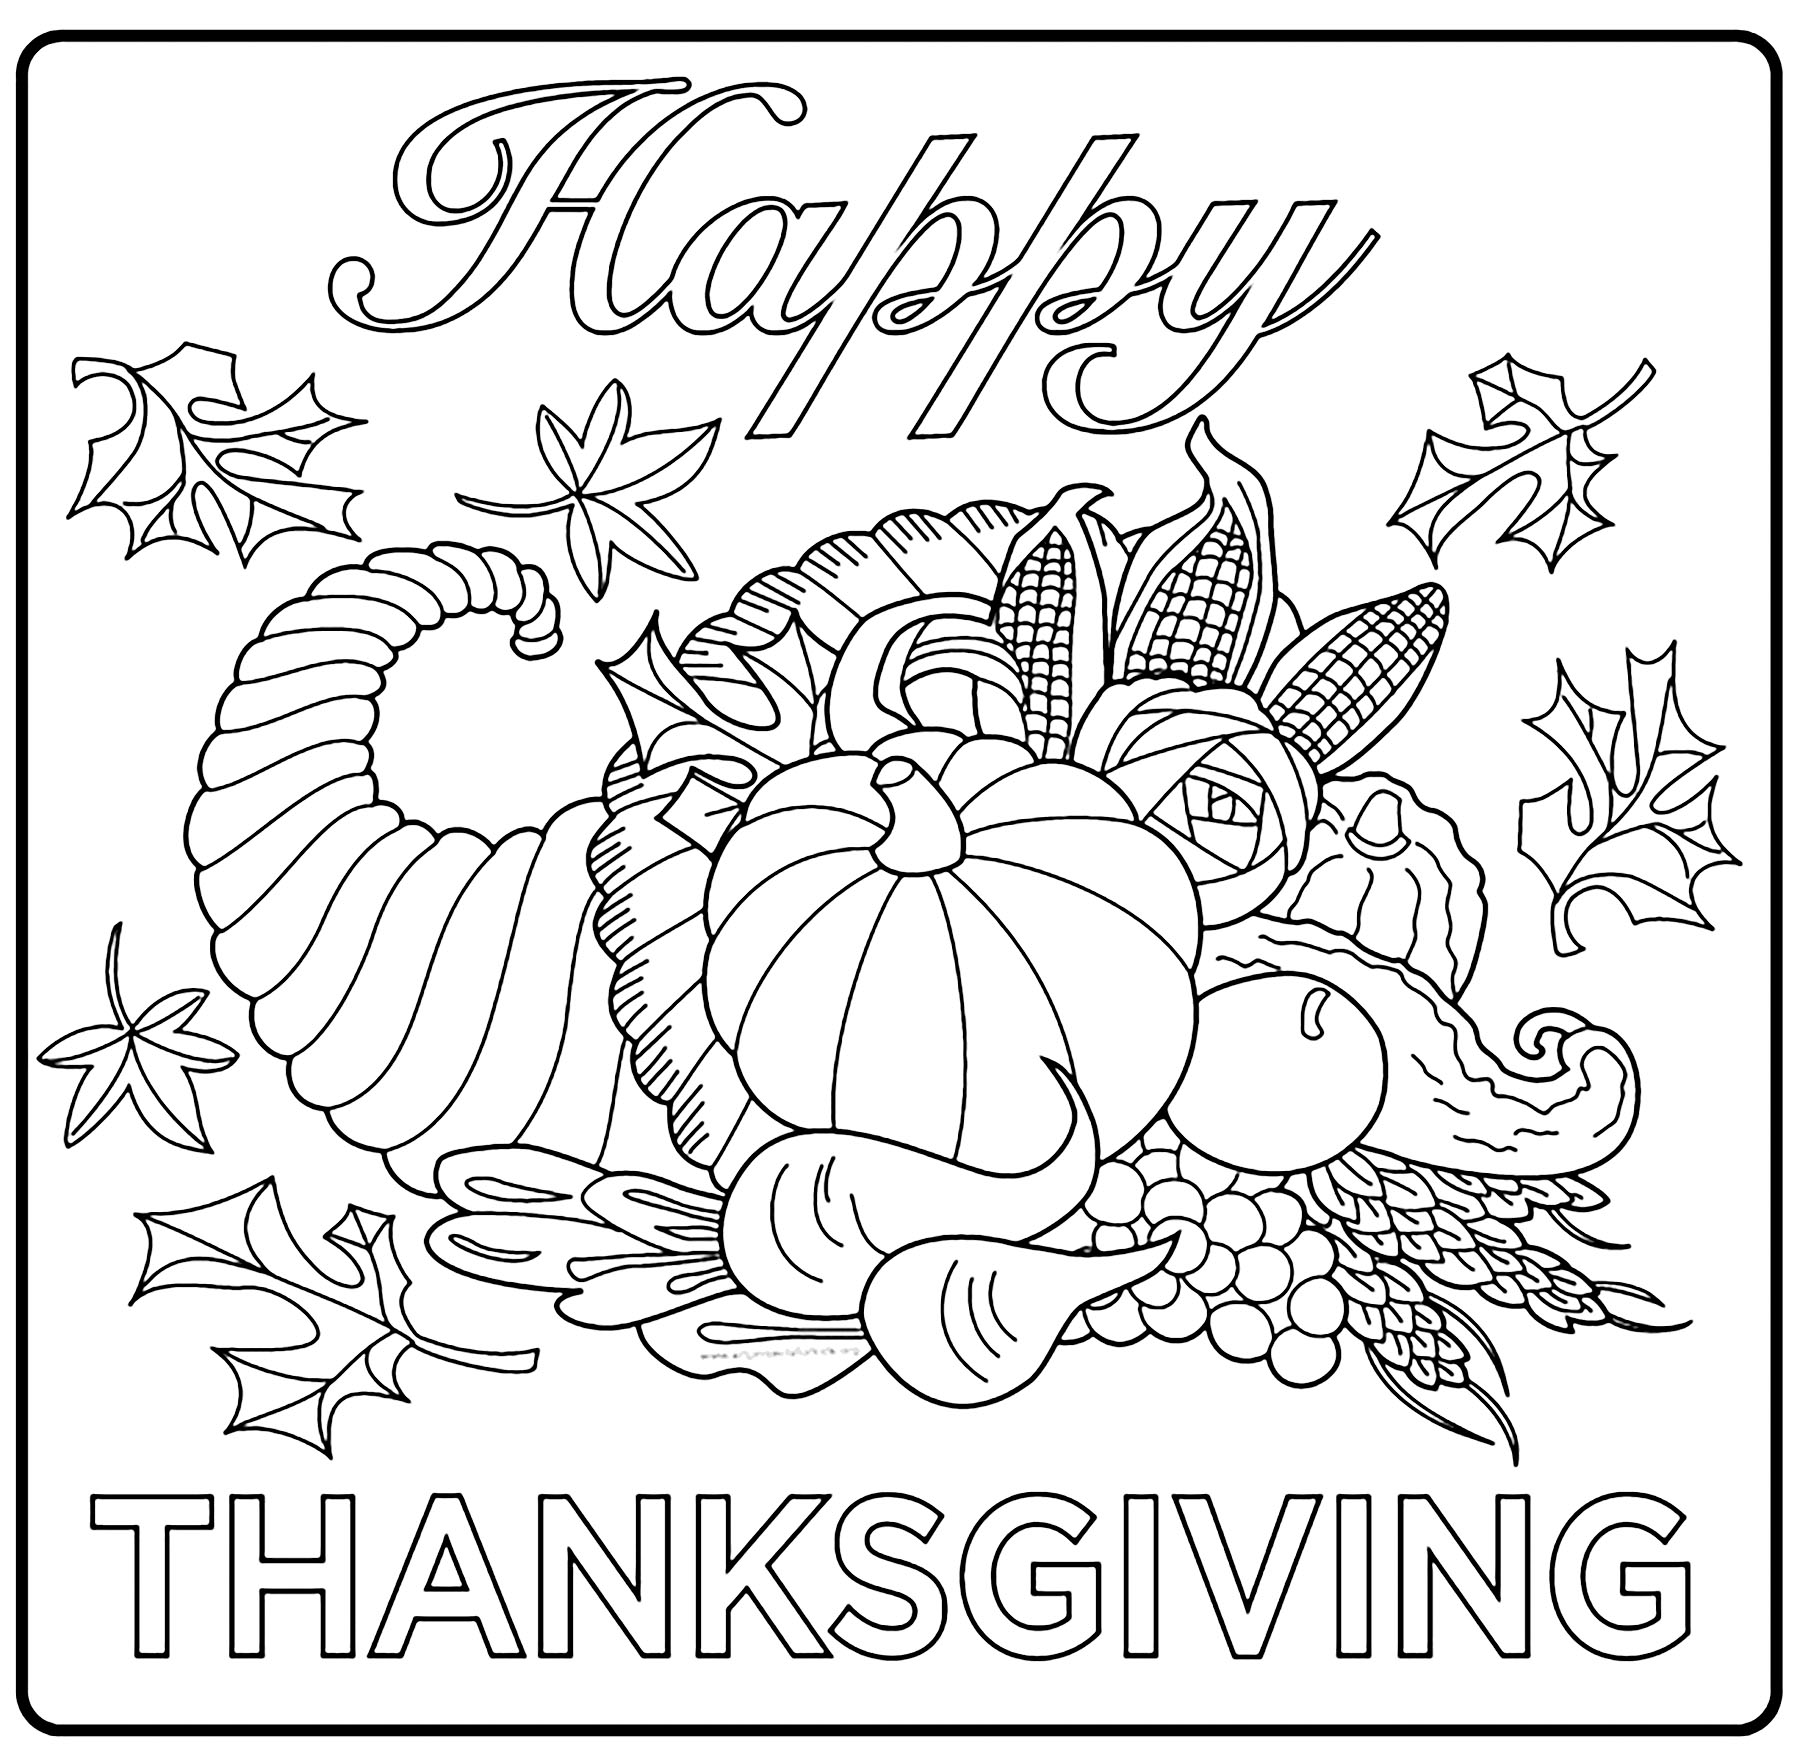 Thanksgiving free to color for children - Thanksgiving Kids Coloring ...